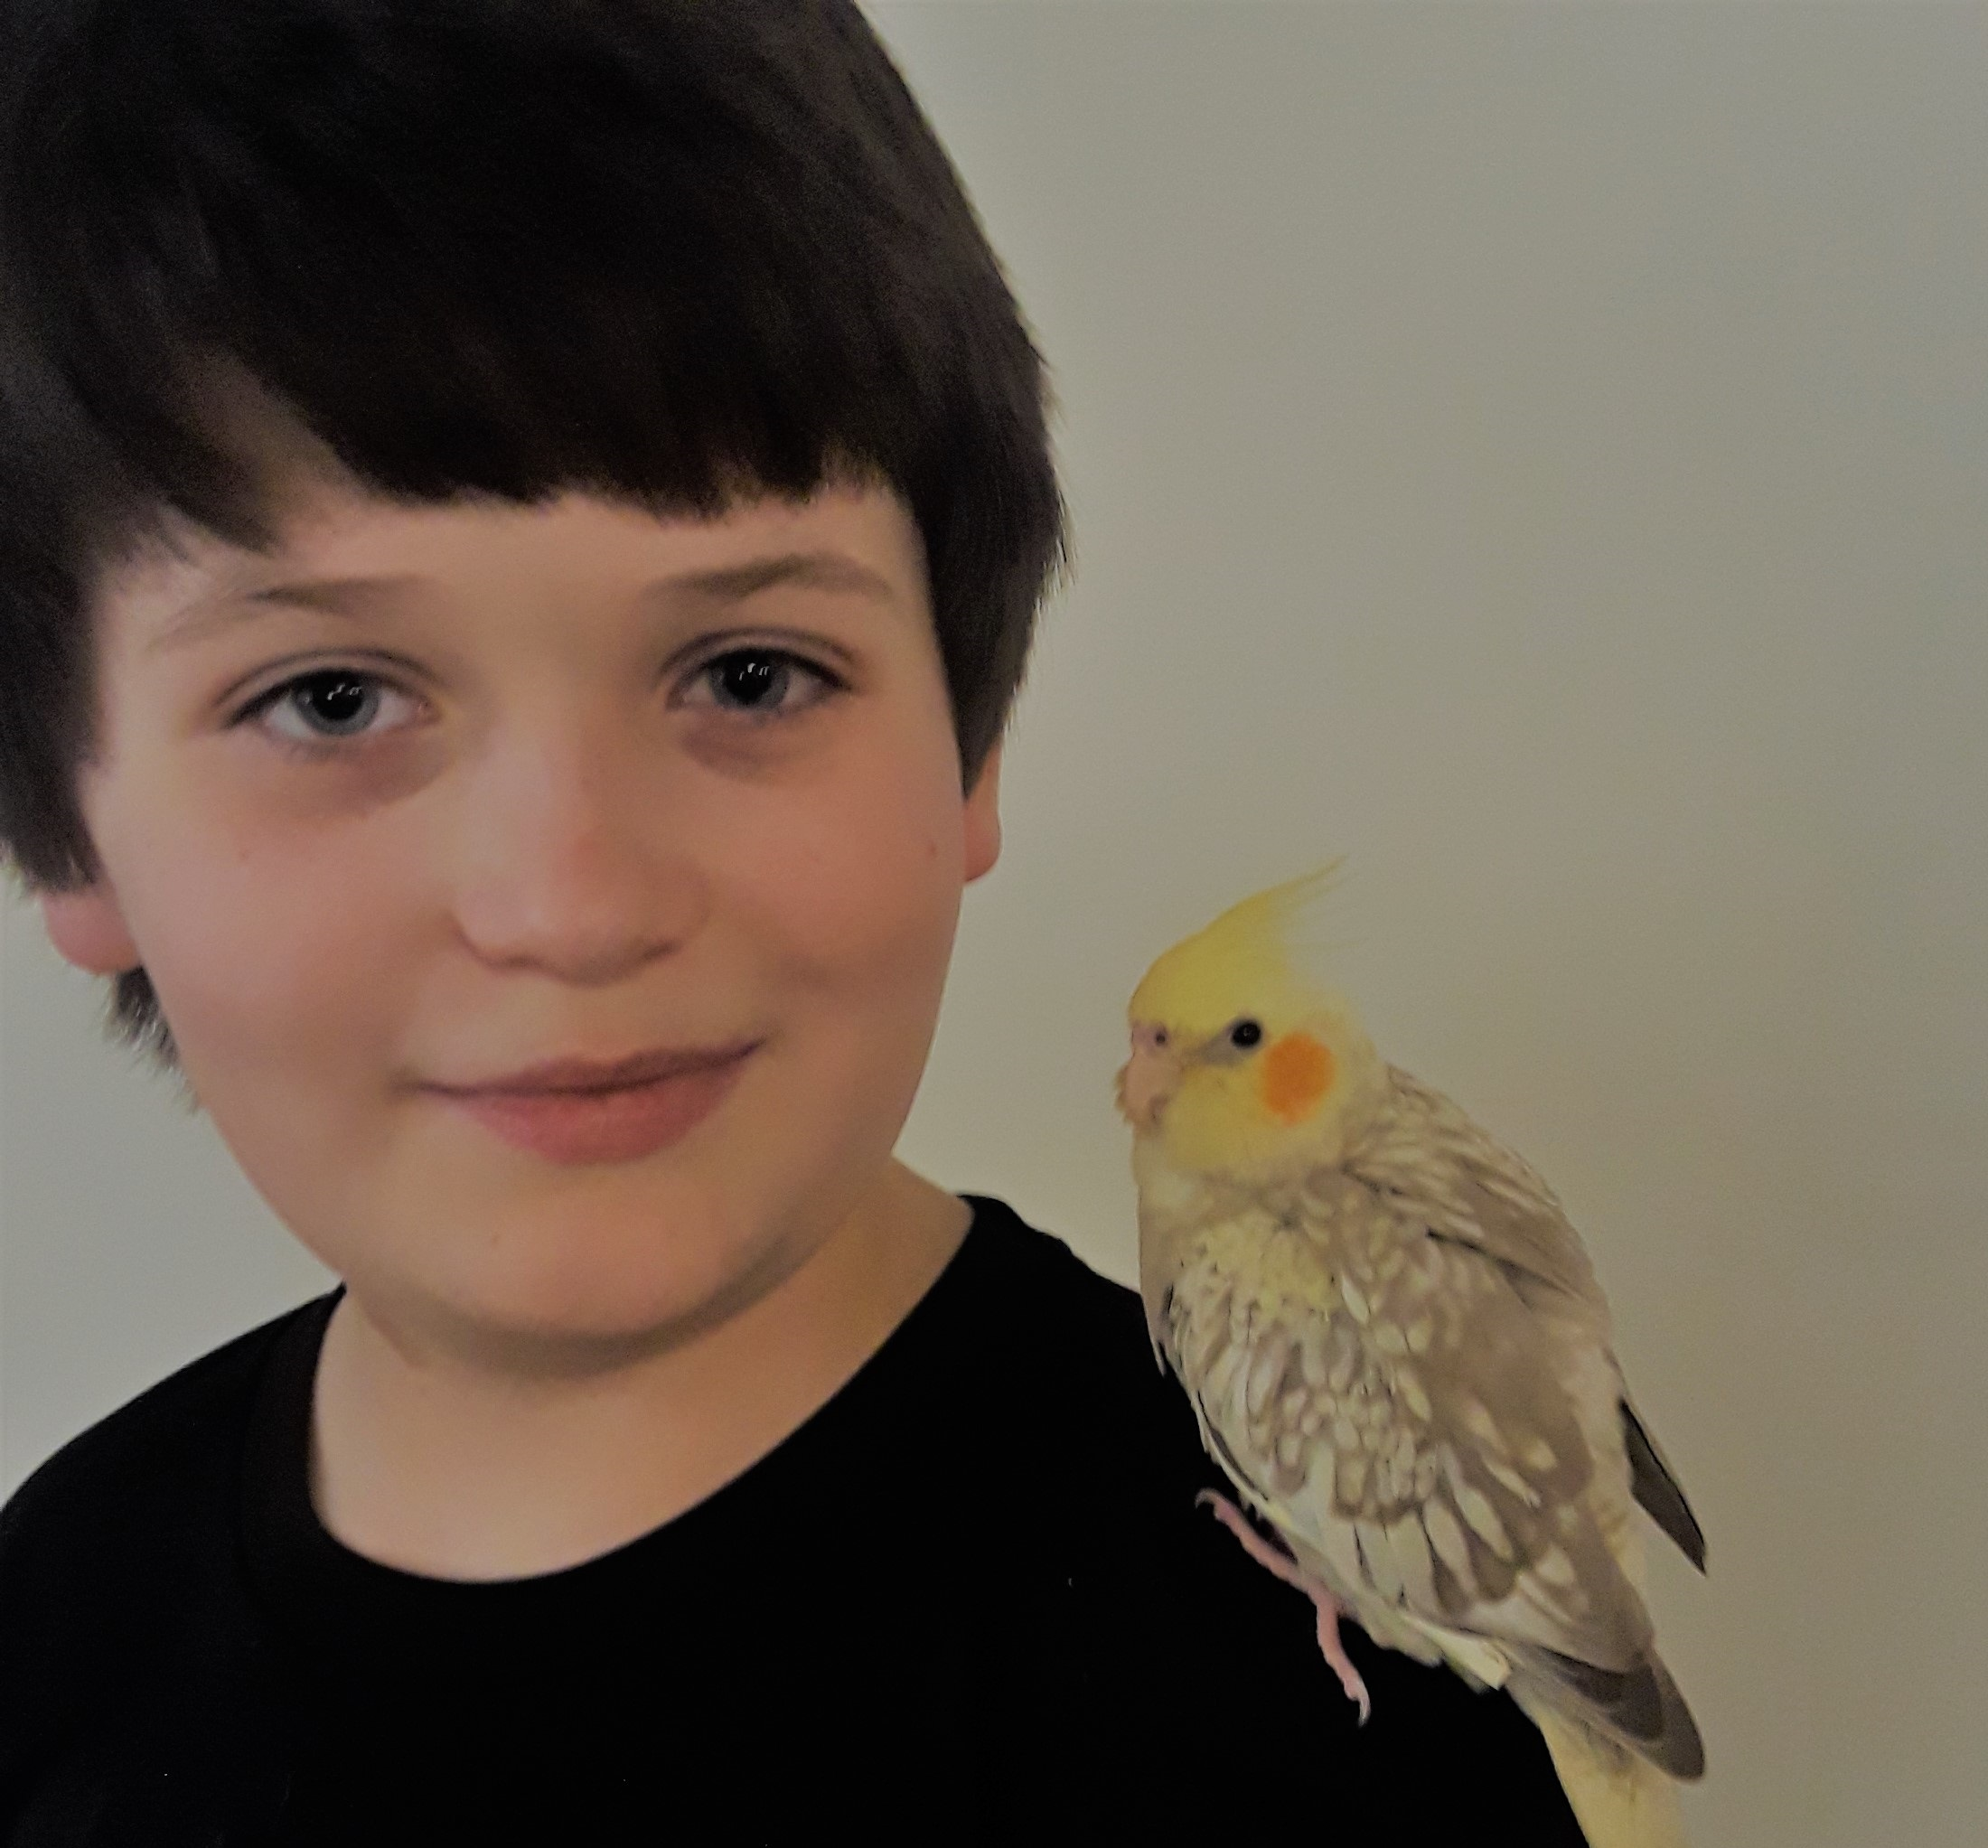 Trhea Elgin (5th grade) with his cockatiel, Tweetie. Tweetie is about a month old, still just a baby in bird terms, and is likely going to continue to grow a bit more. She can already mimic simple tunes by whistling.